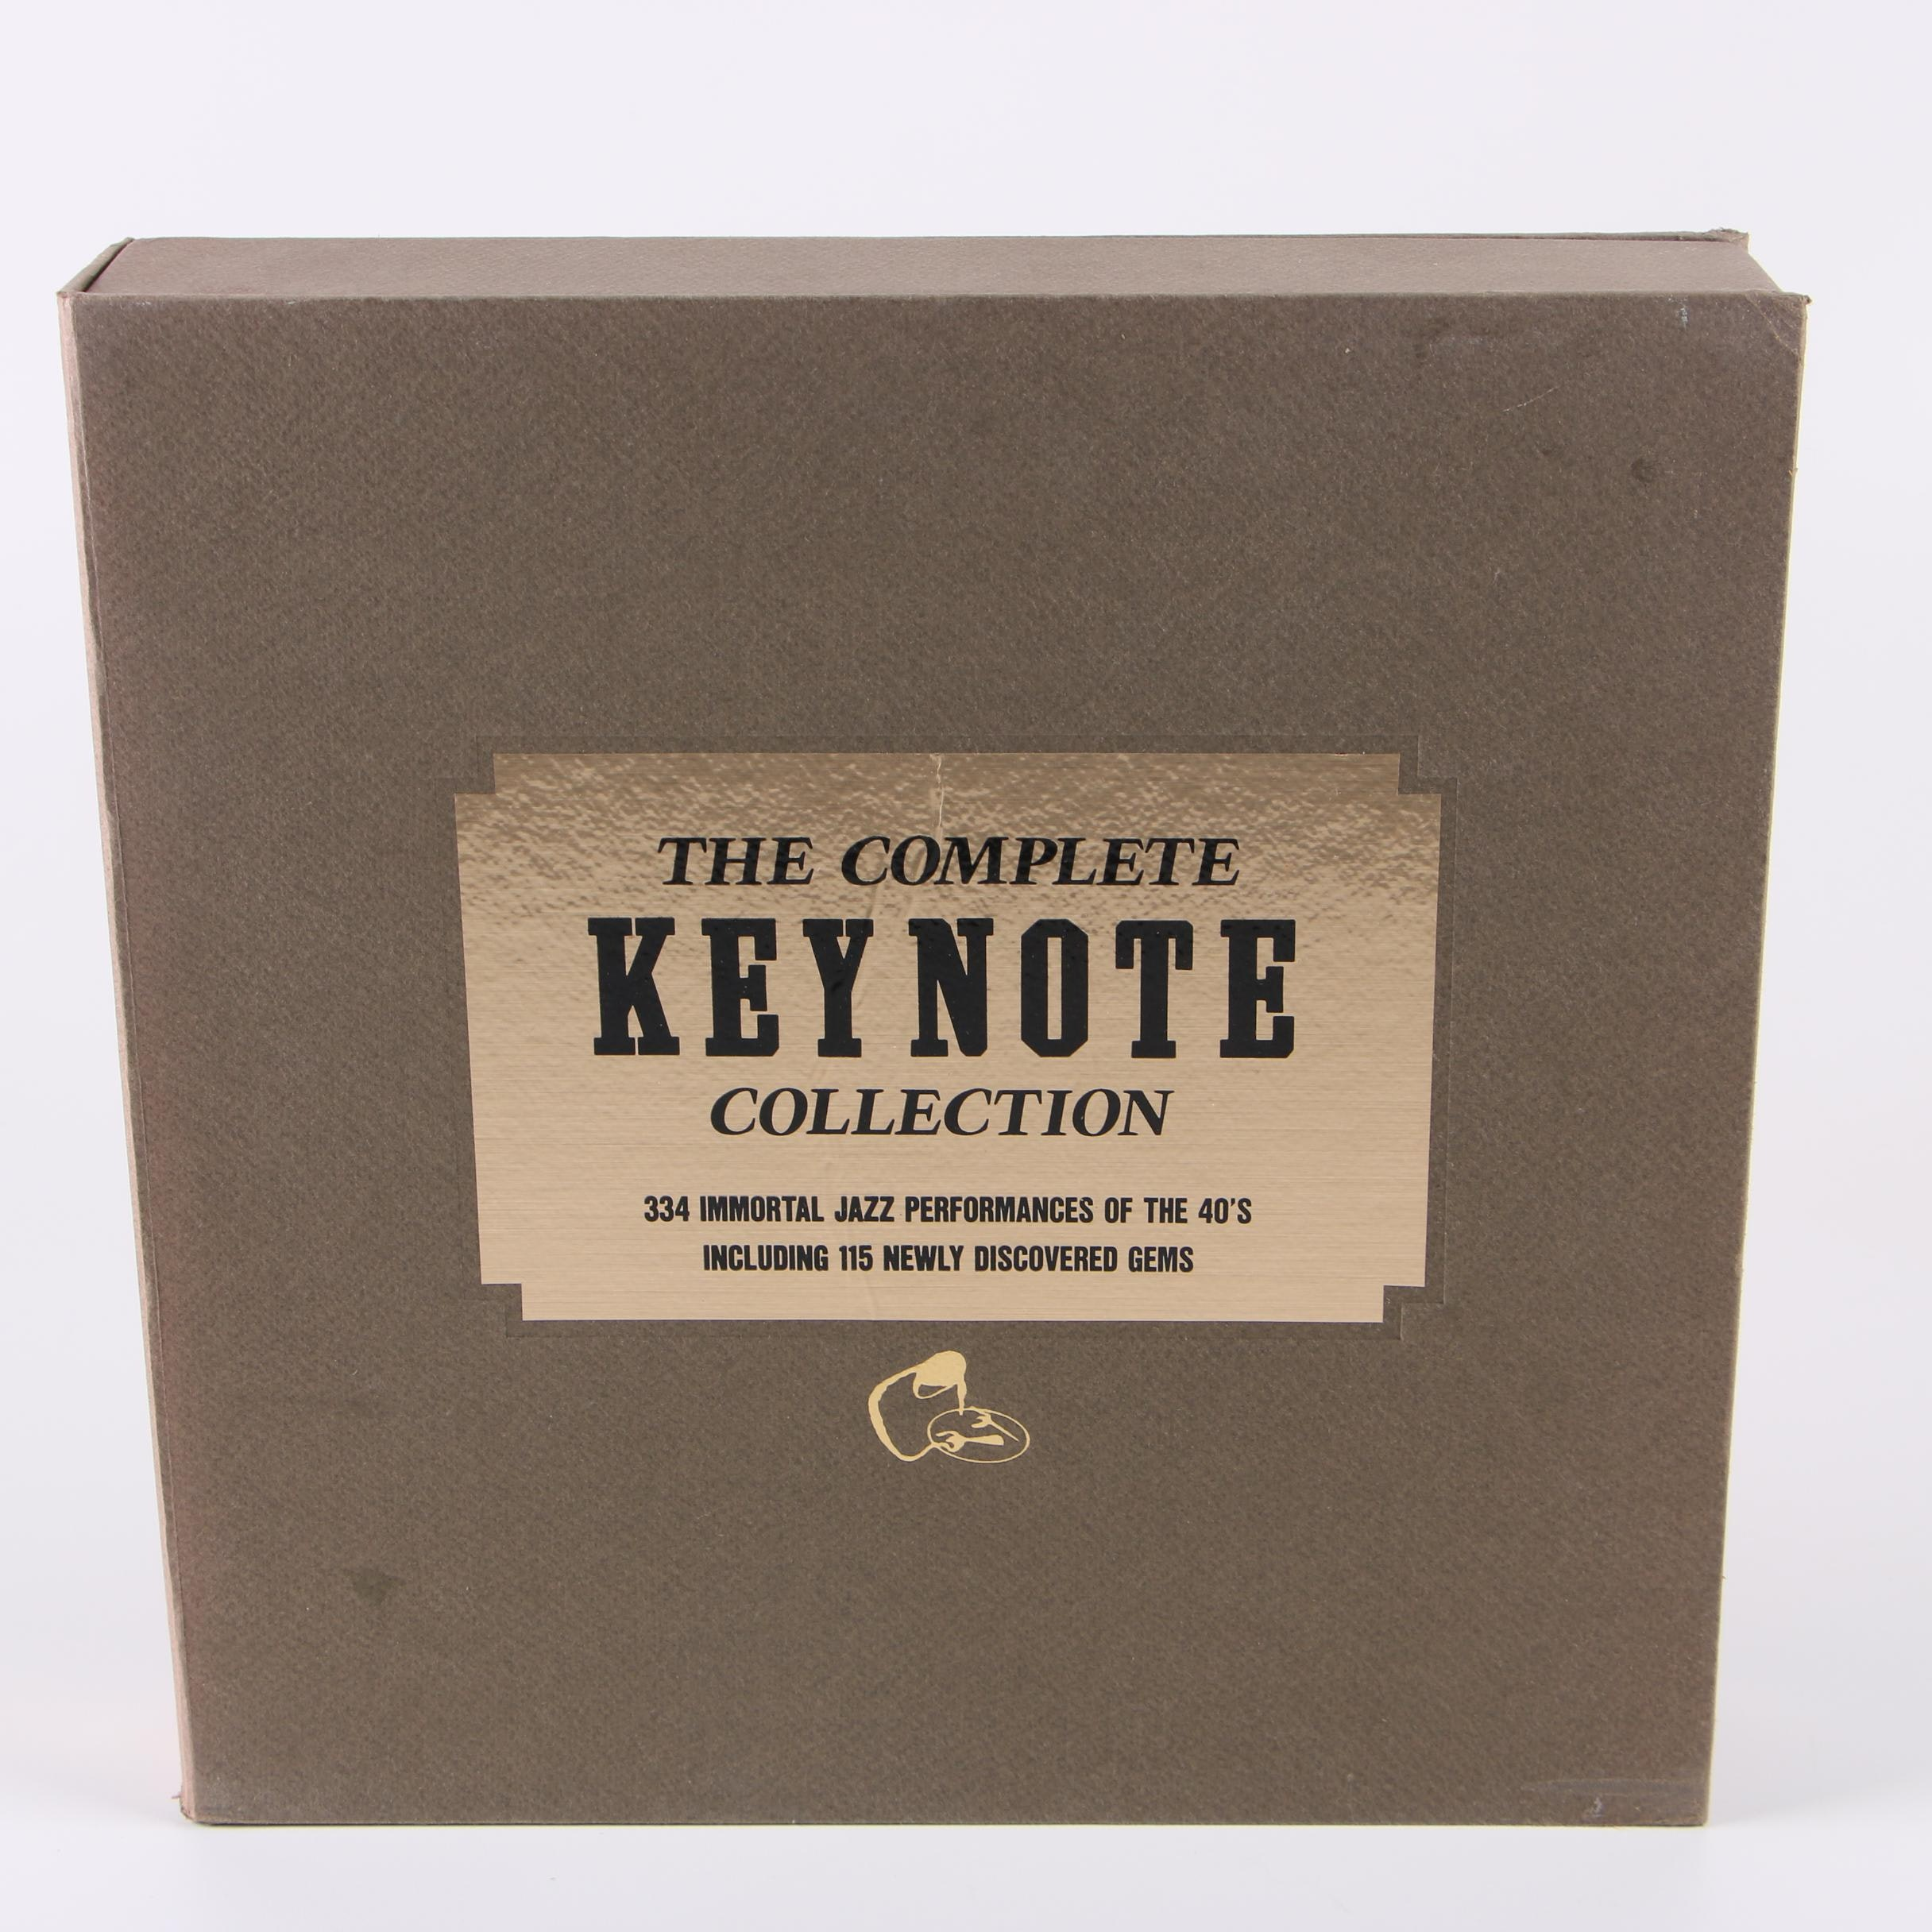 """The Complete Keynote Collection"" Vinyl Record Box Set, 1986"